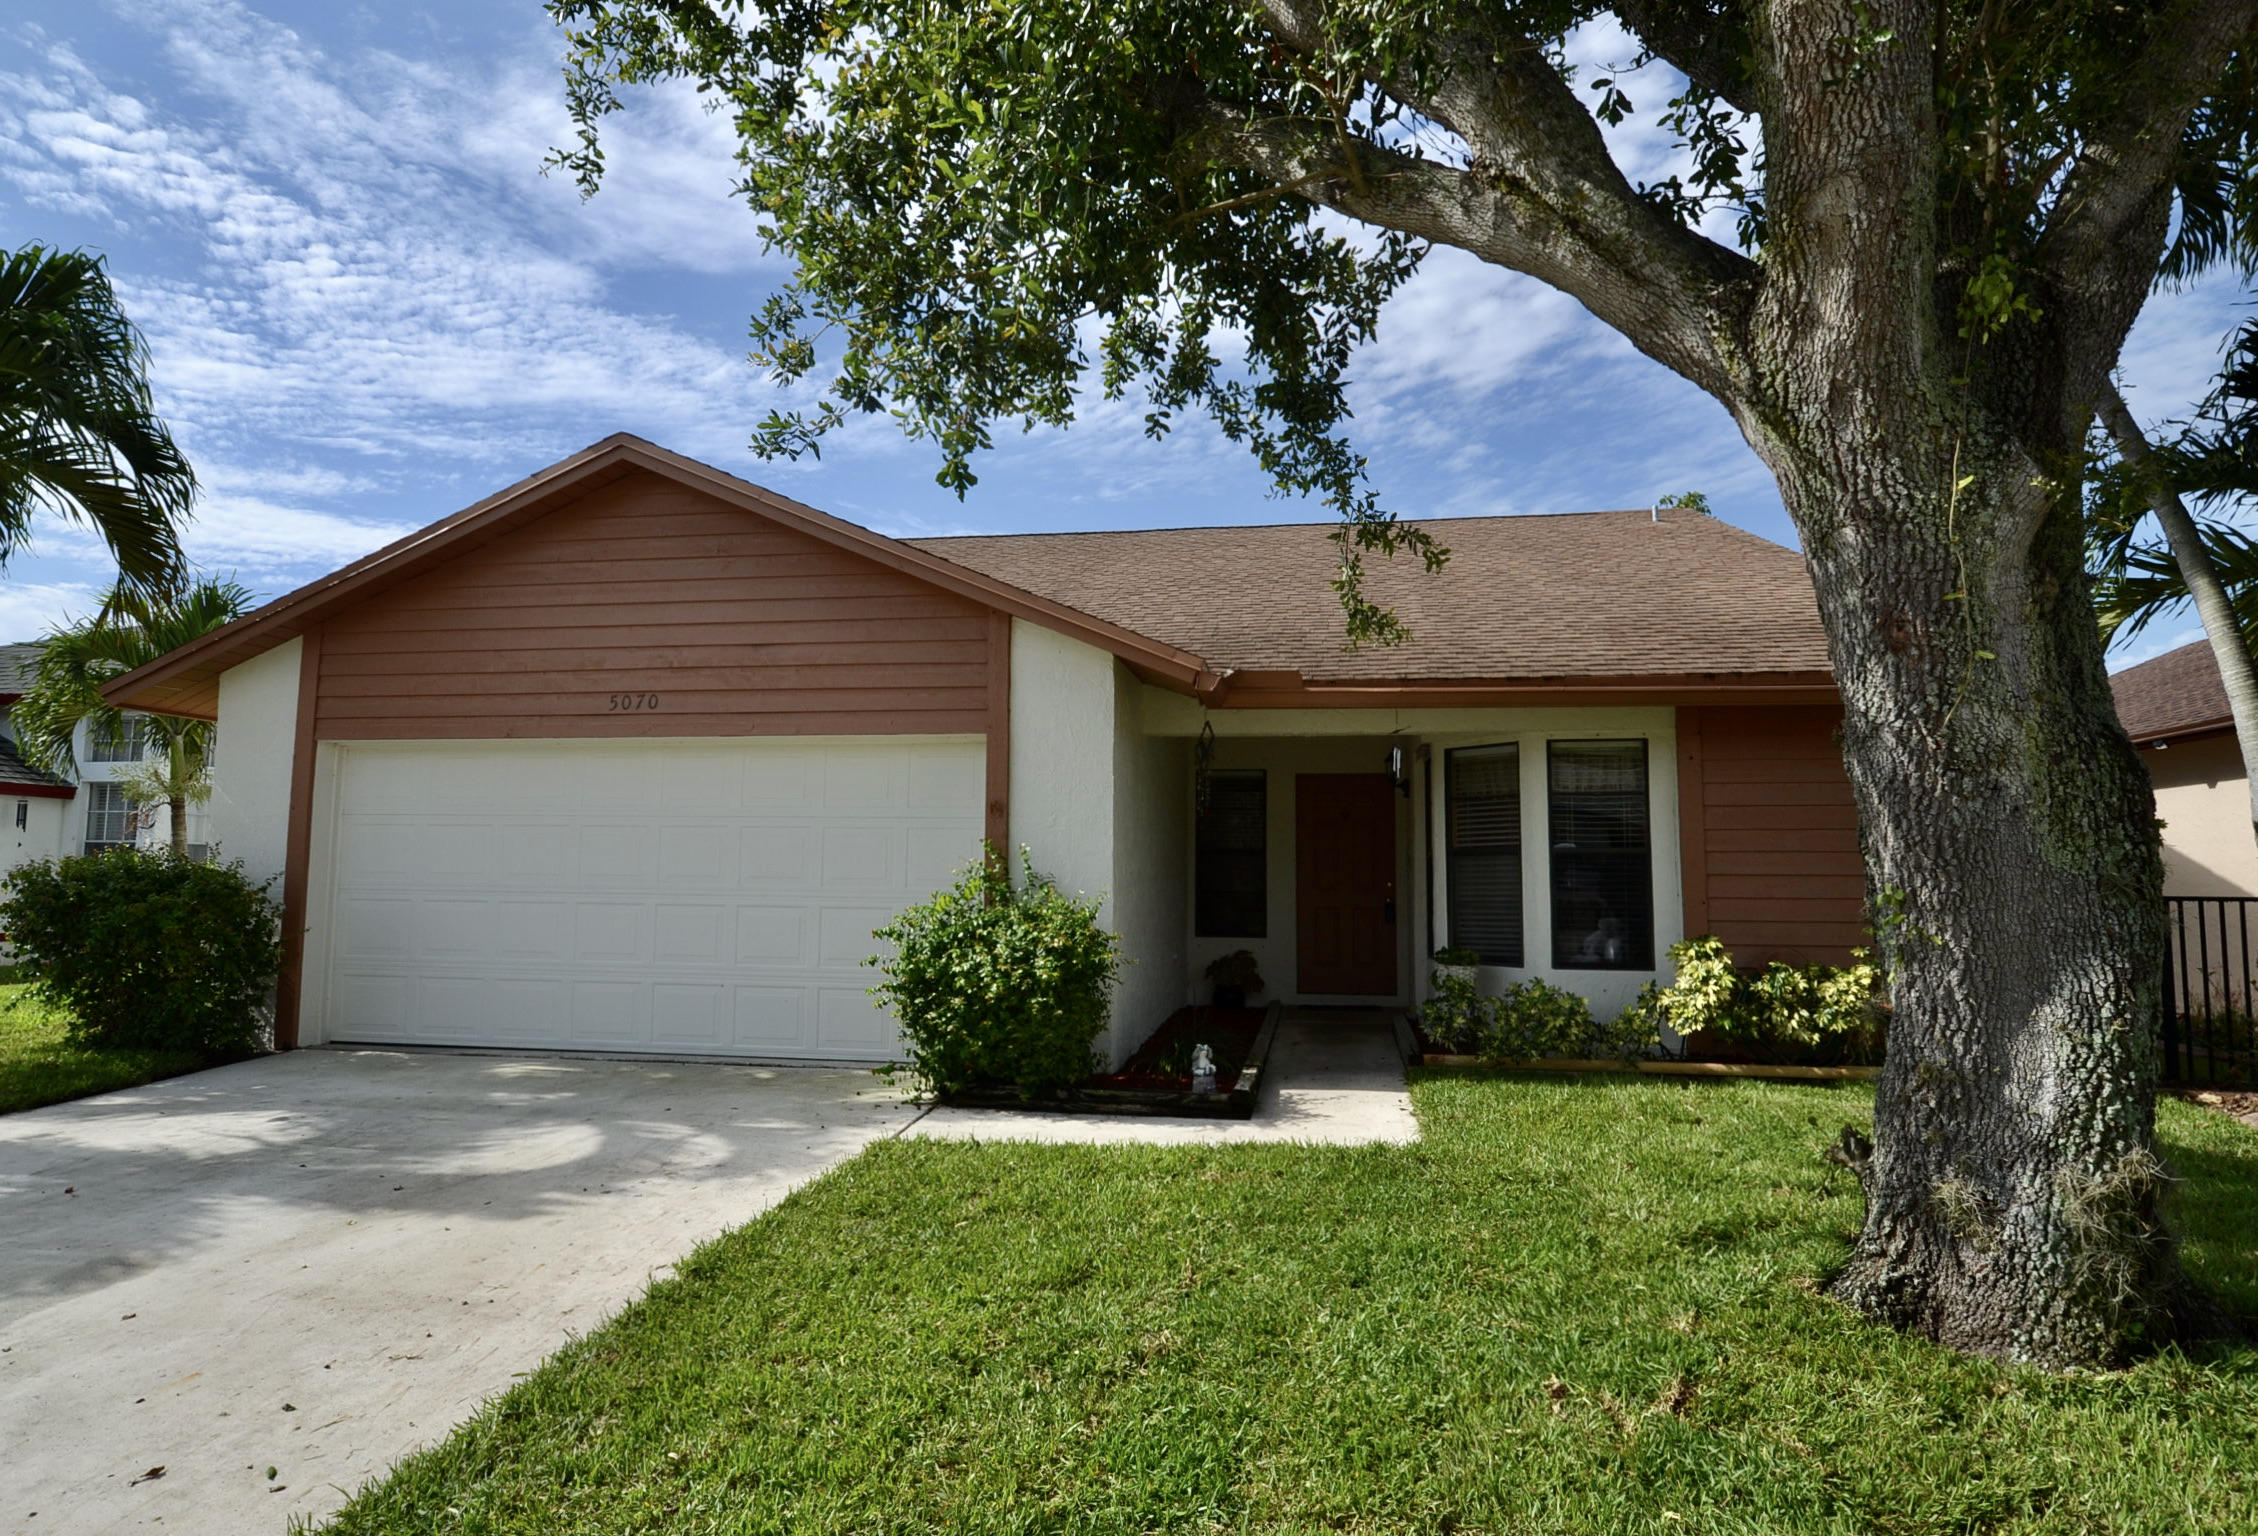 5070  Foxhall Drive  For Sale 10715435, FL